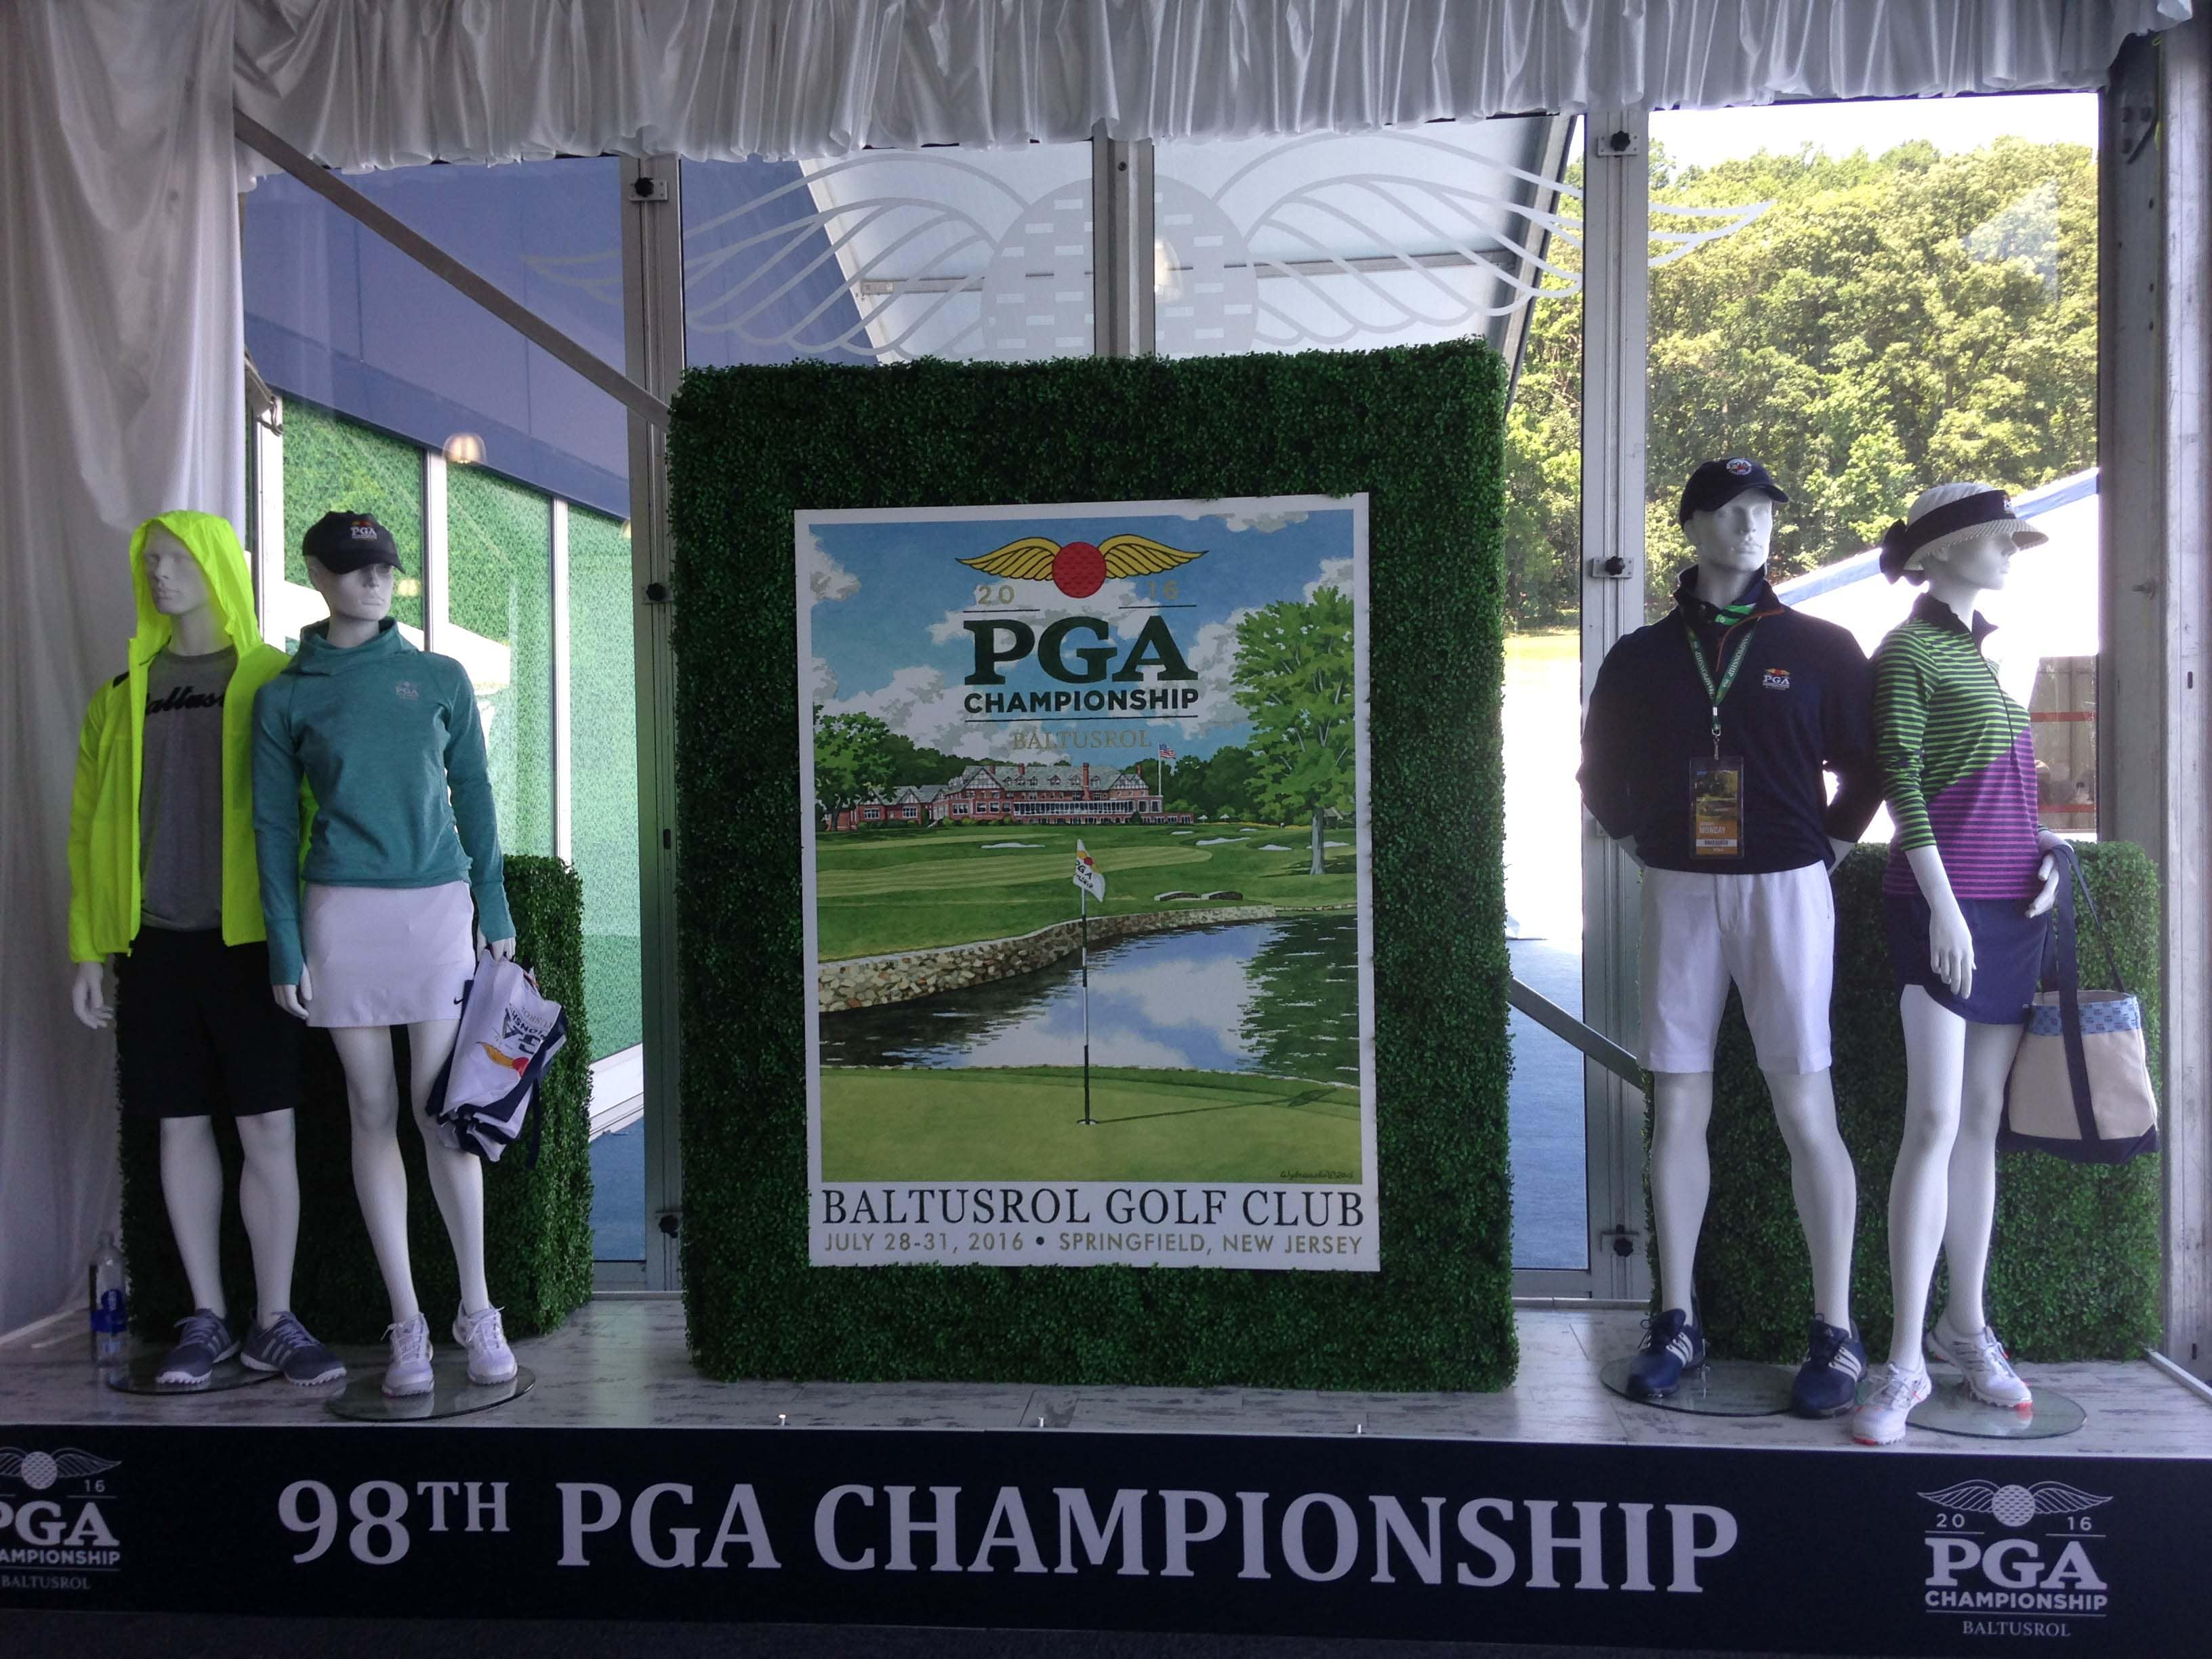 Welcome to the PGA merchandise tent